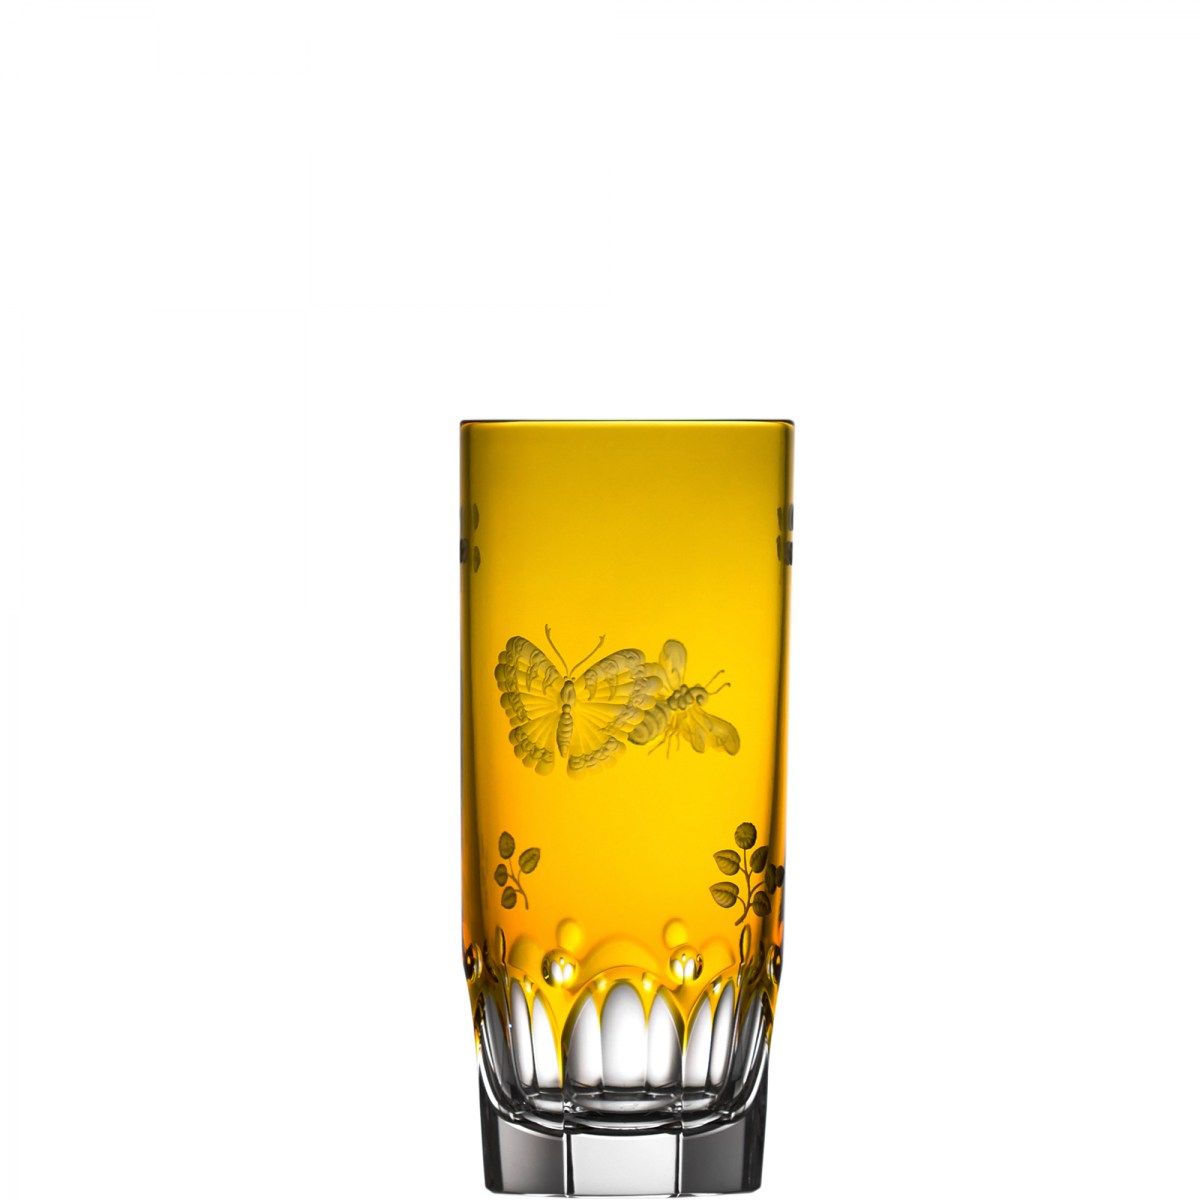 Springtime Amber Highball - $ 272 / € 238